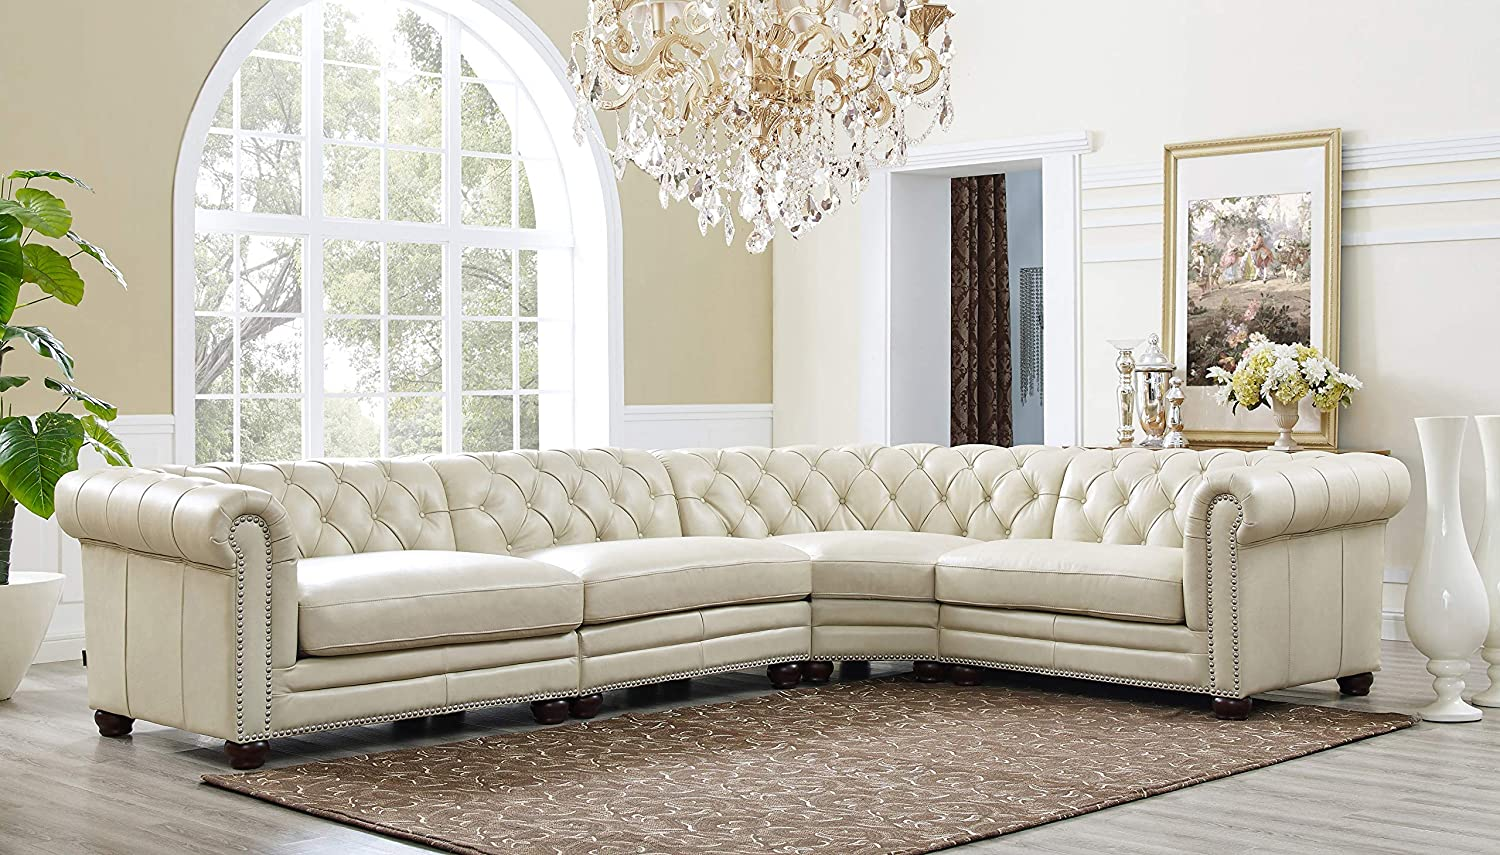 Hydeline Aliso 100% Leather Sectional Sofa